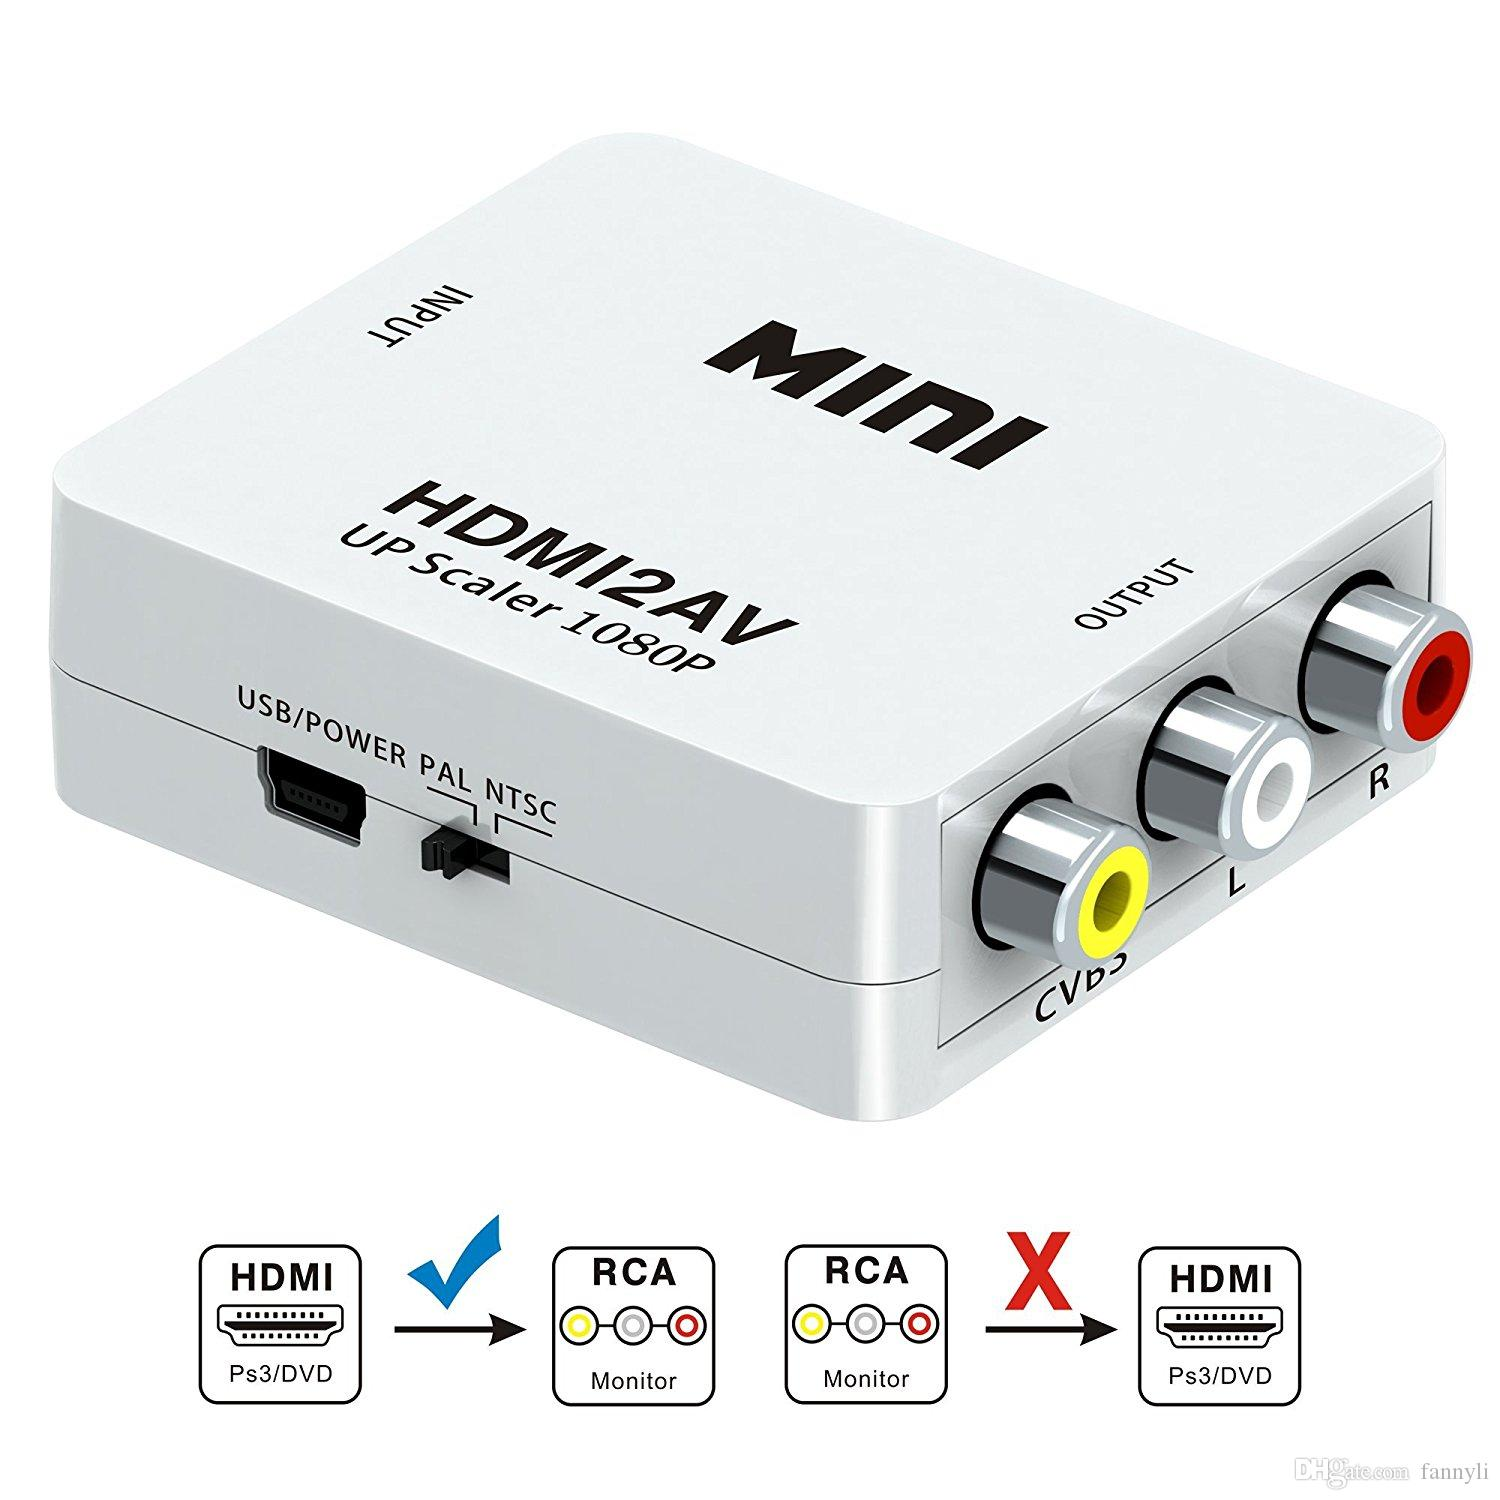 hdmi to rca wiring diagram dictator engine management av converter box hd cvsb video vga adapter hdmi2av support ntsc and pal output with audio adapters